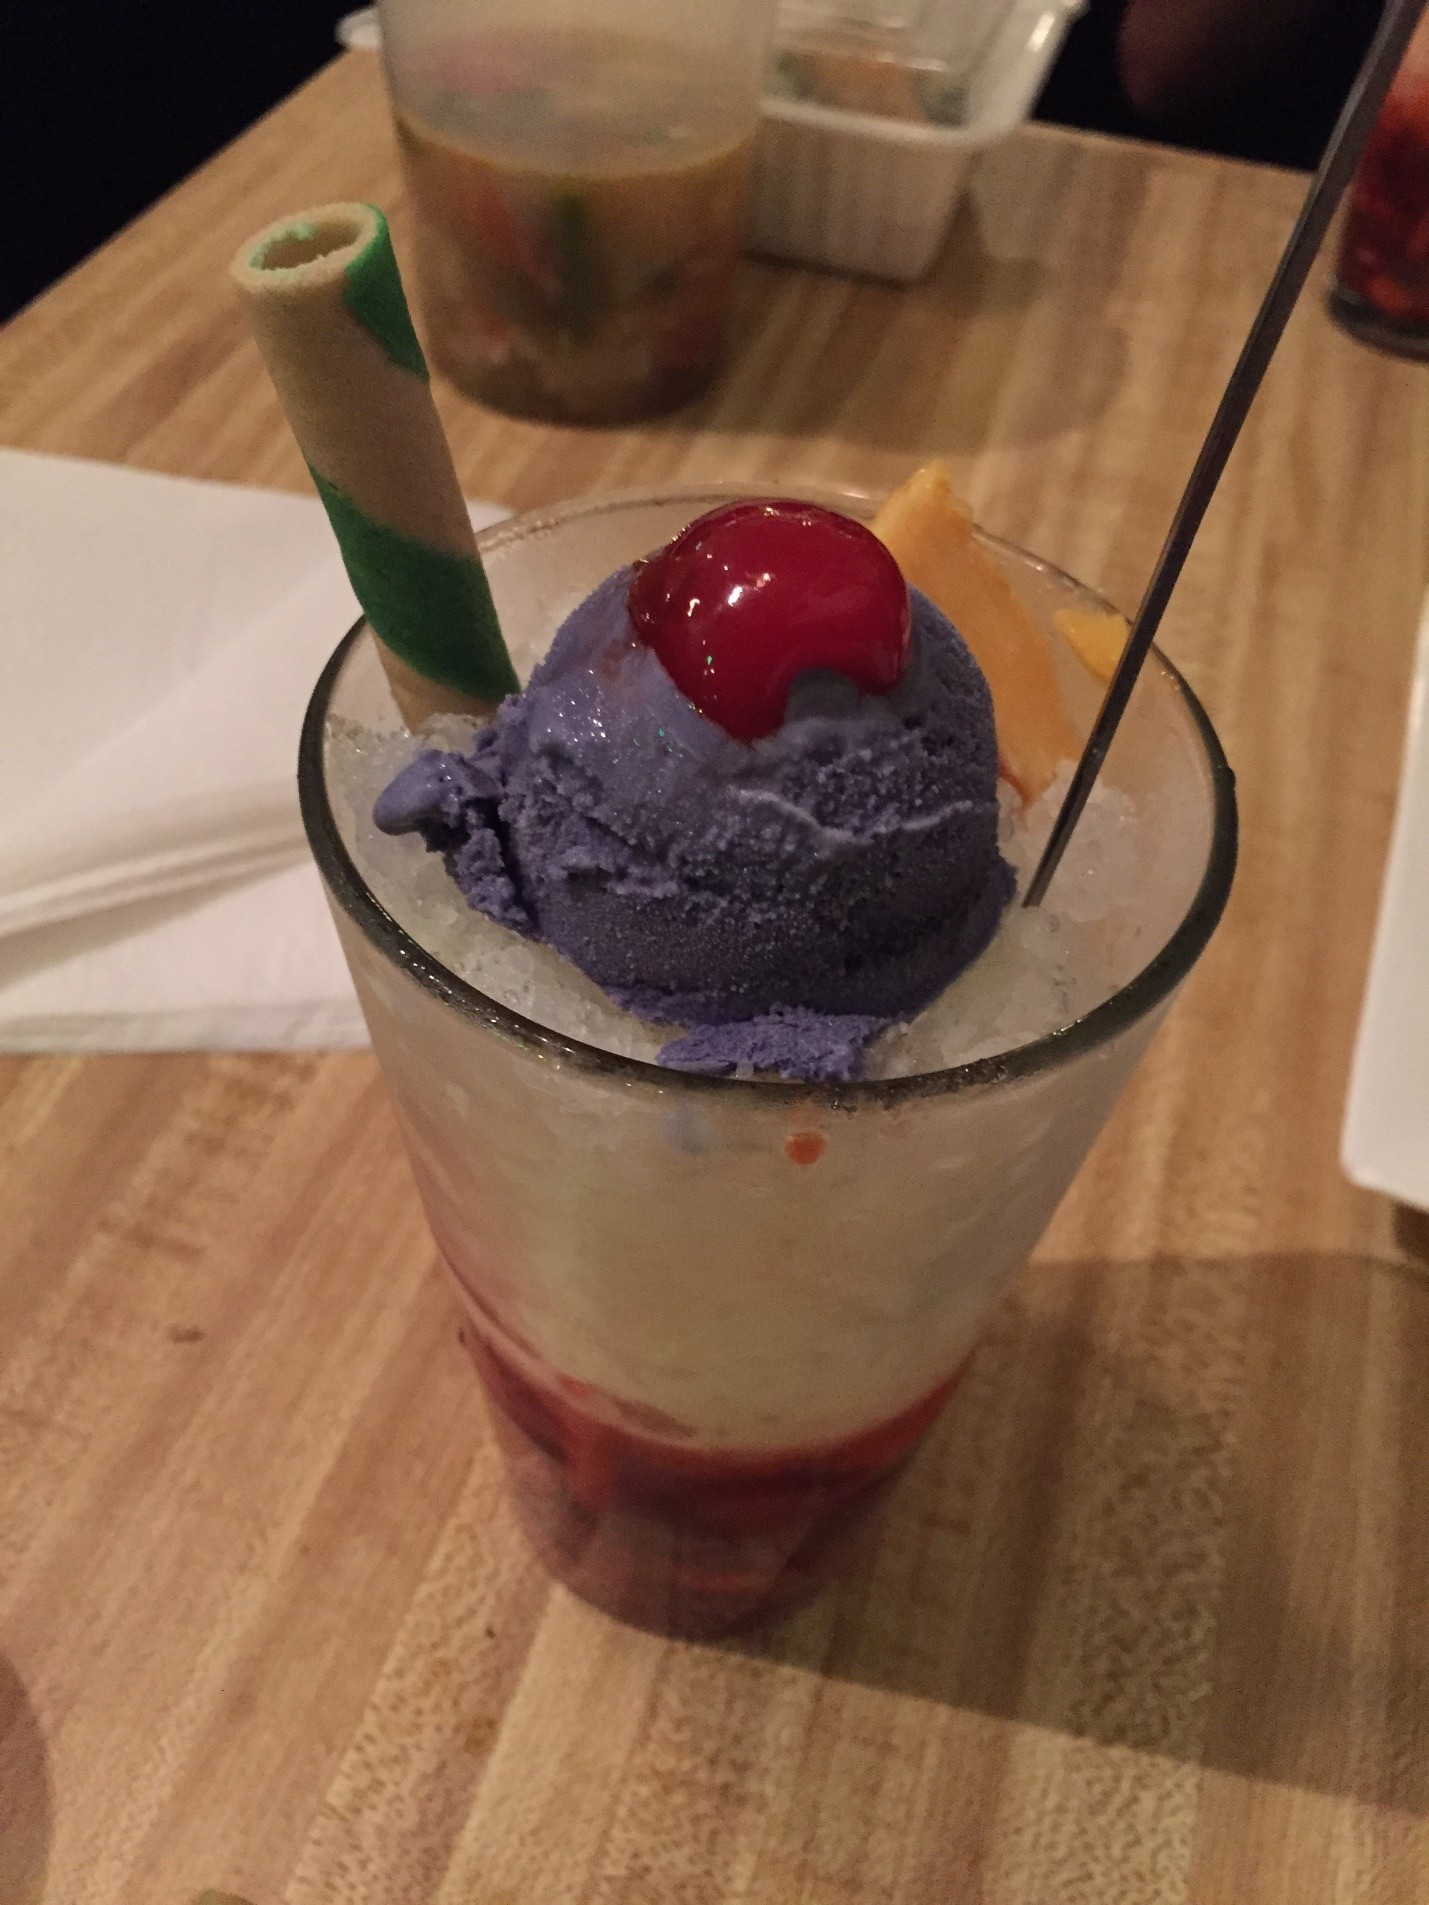 Halo Halo/Photo: Rosemary Lane